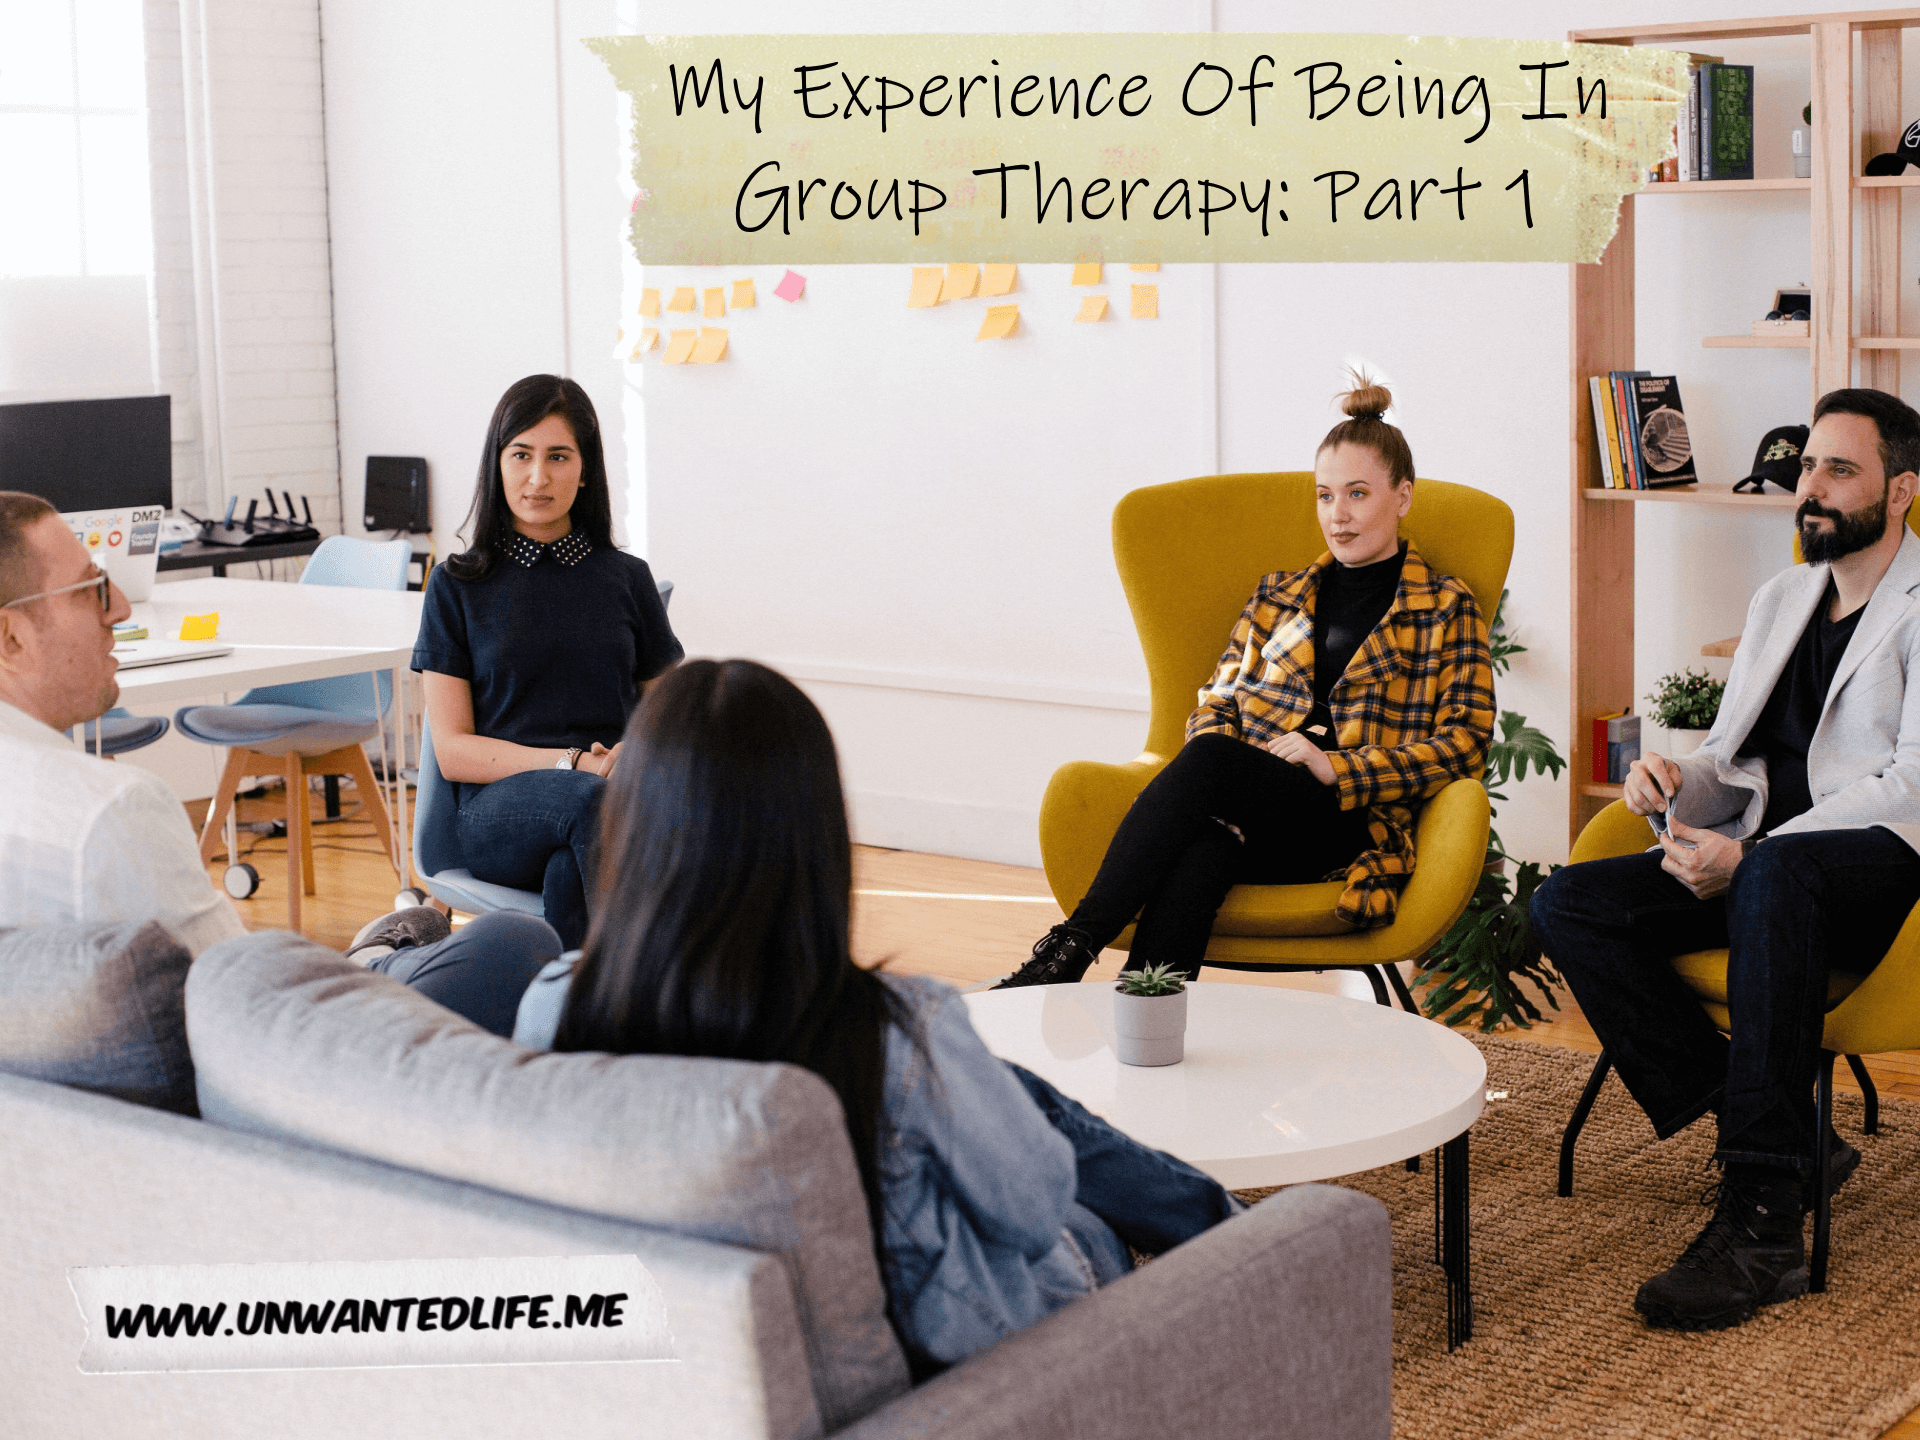 A photo of five people sitting on chairs in a circle talking to each other with the title of the article -My Experience Of Being In Group Therapy: Part 1 - across the top of the image